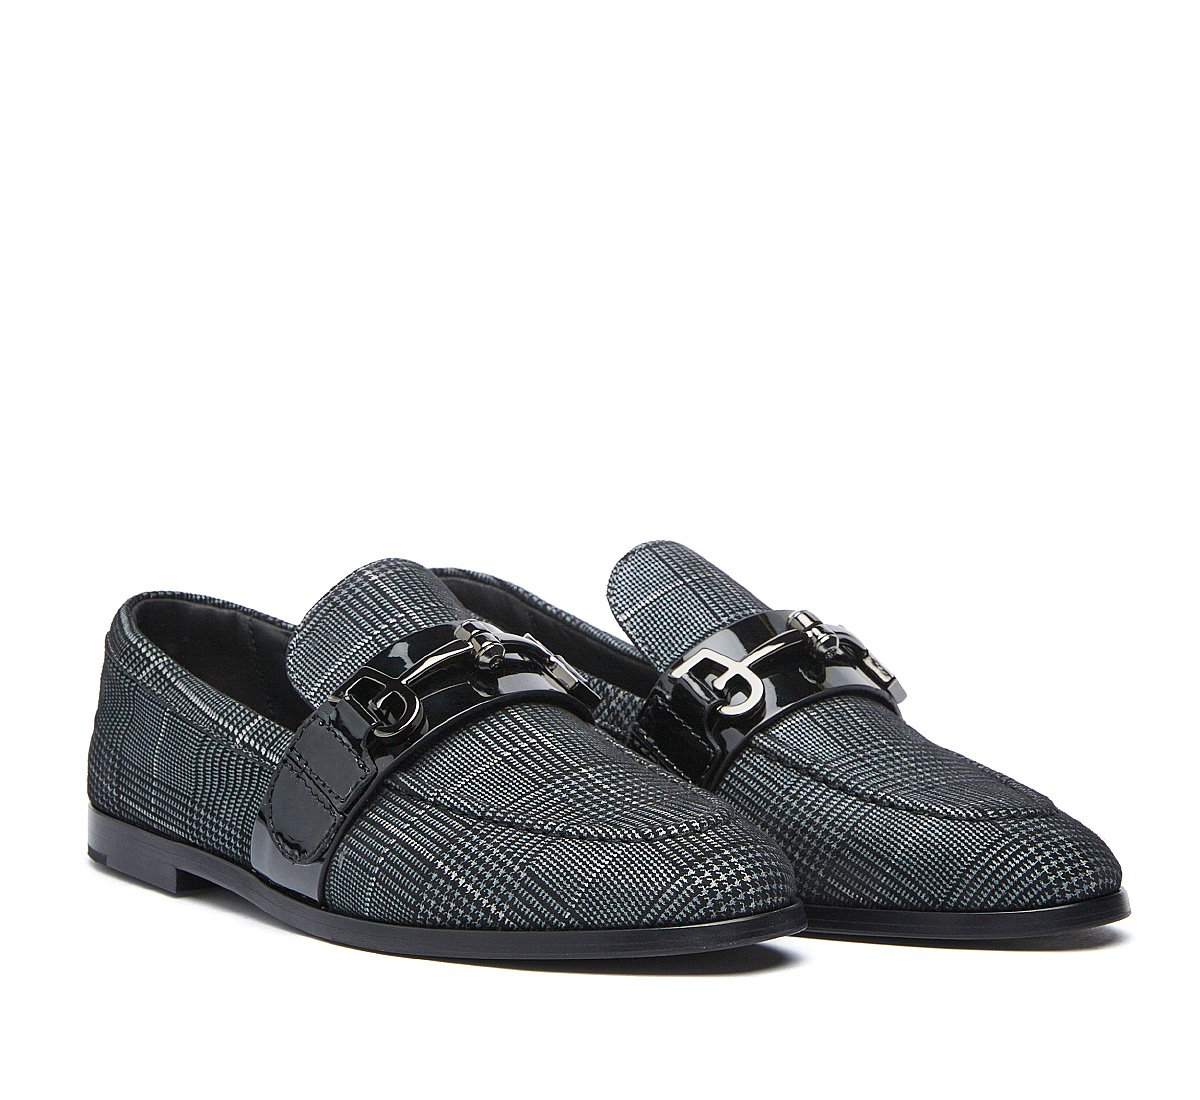 Prince of Wales loafer